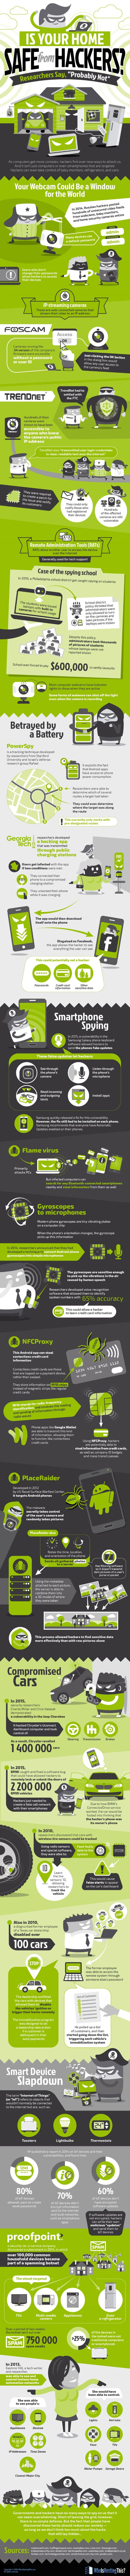 Is Your Home Safe From Hackers? - Infographic http://lifehackson.com/home-safe-hackers-infographic/